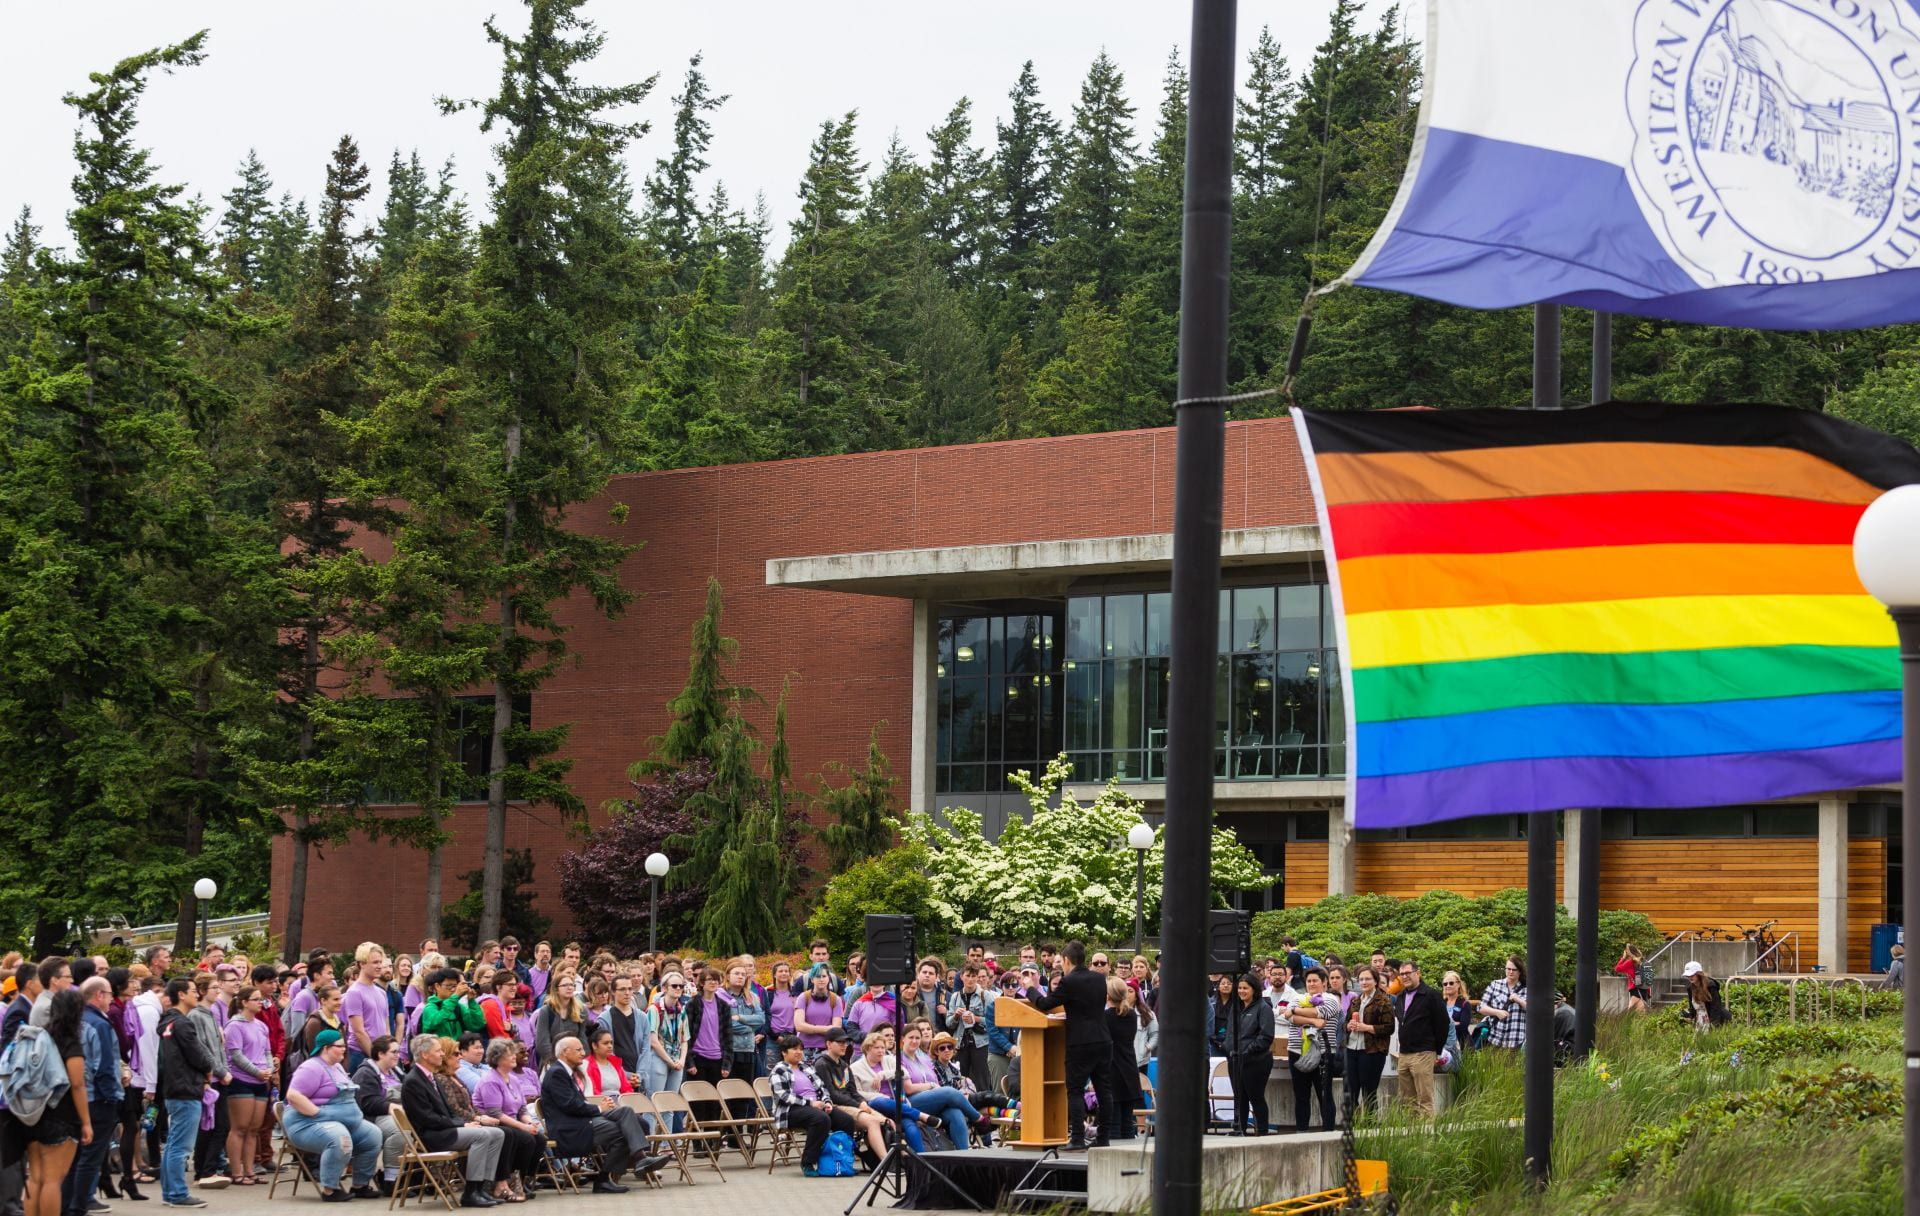 Group of people standing outside at Pride Celebration in front of flags near Rec Center, listening to speaker at podium. Pride flag in foreground.